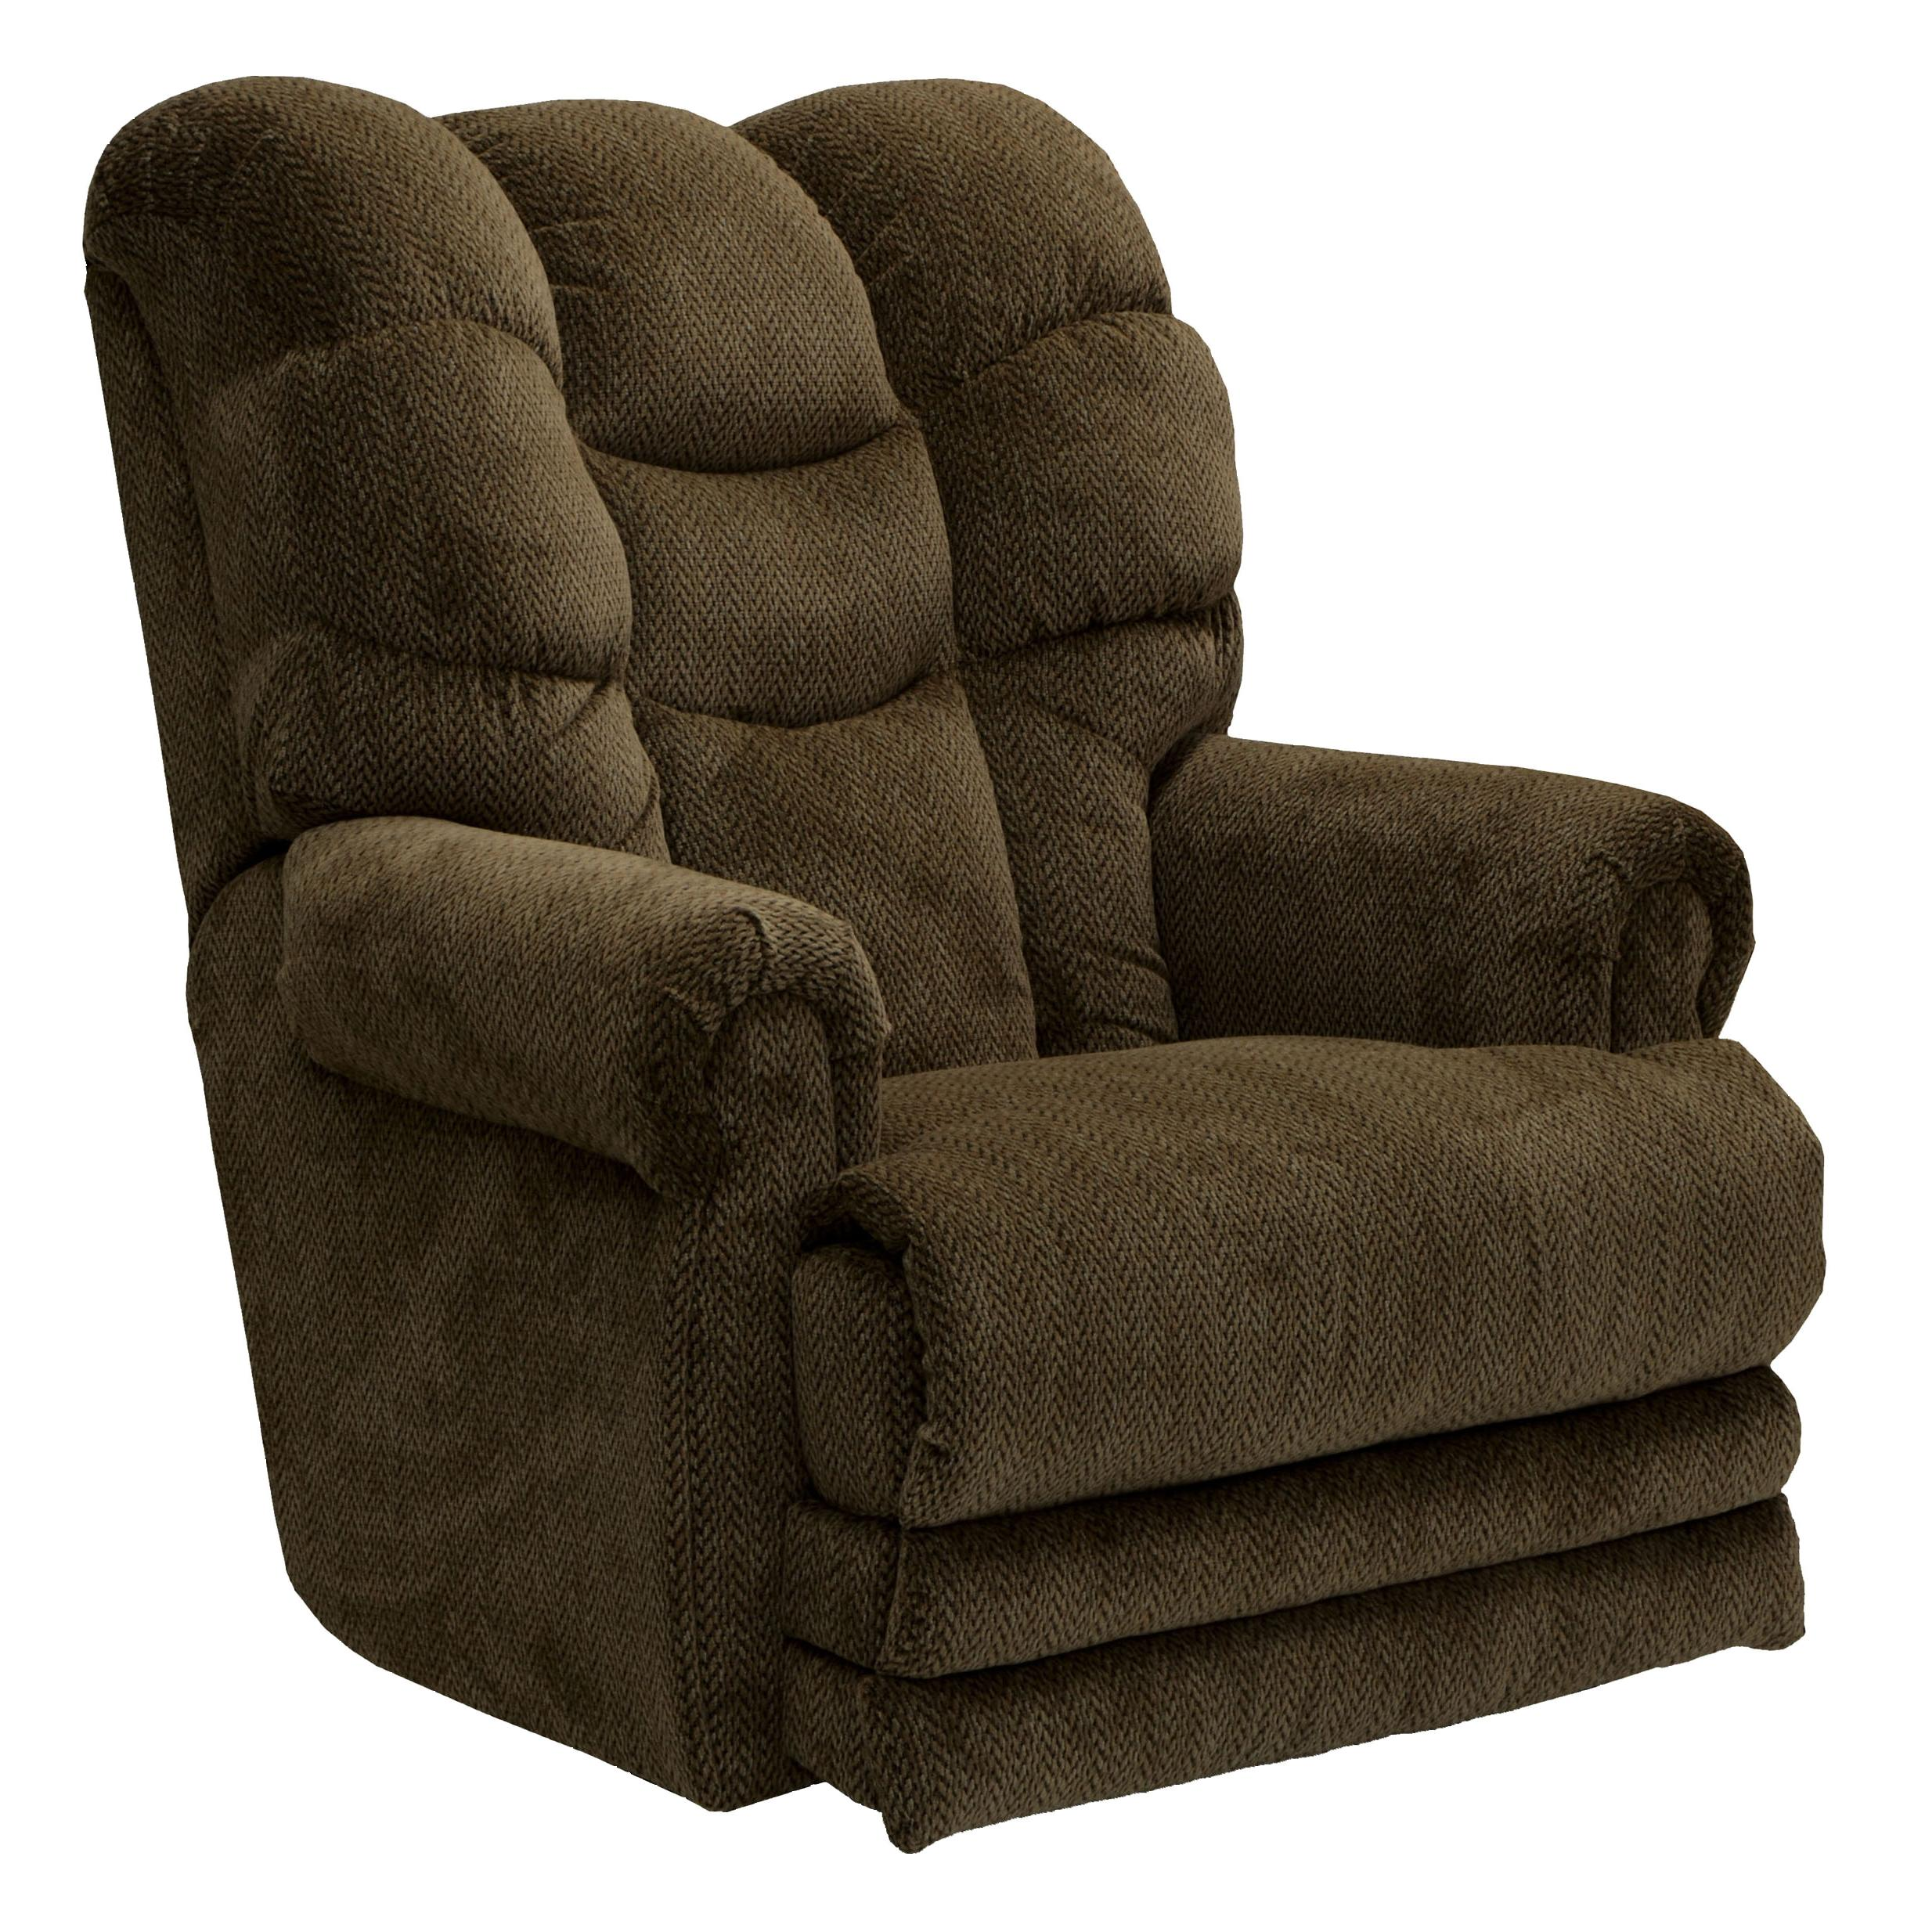 Catnapper big man recliner charles motion recliners for Catnapper cloud nine chaise recliner